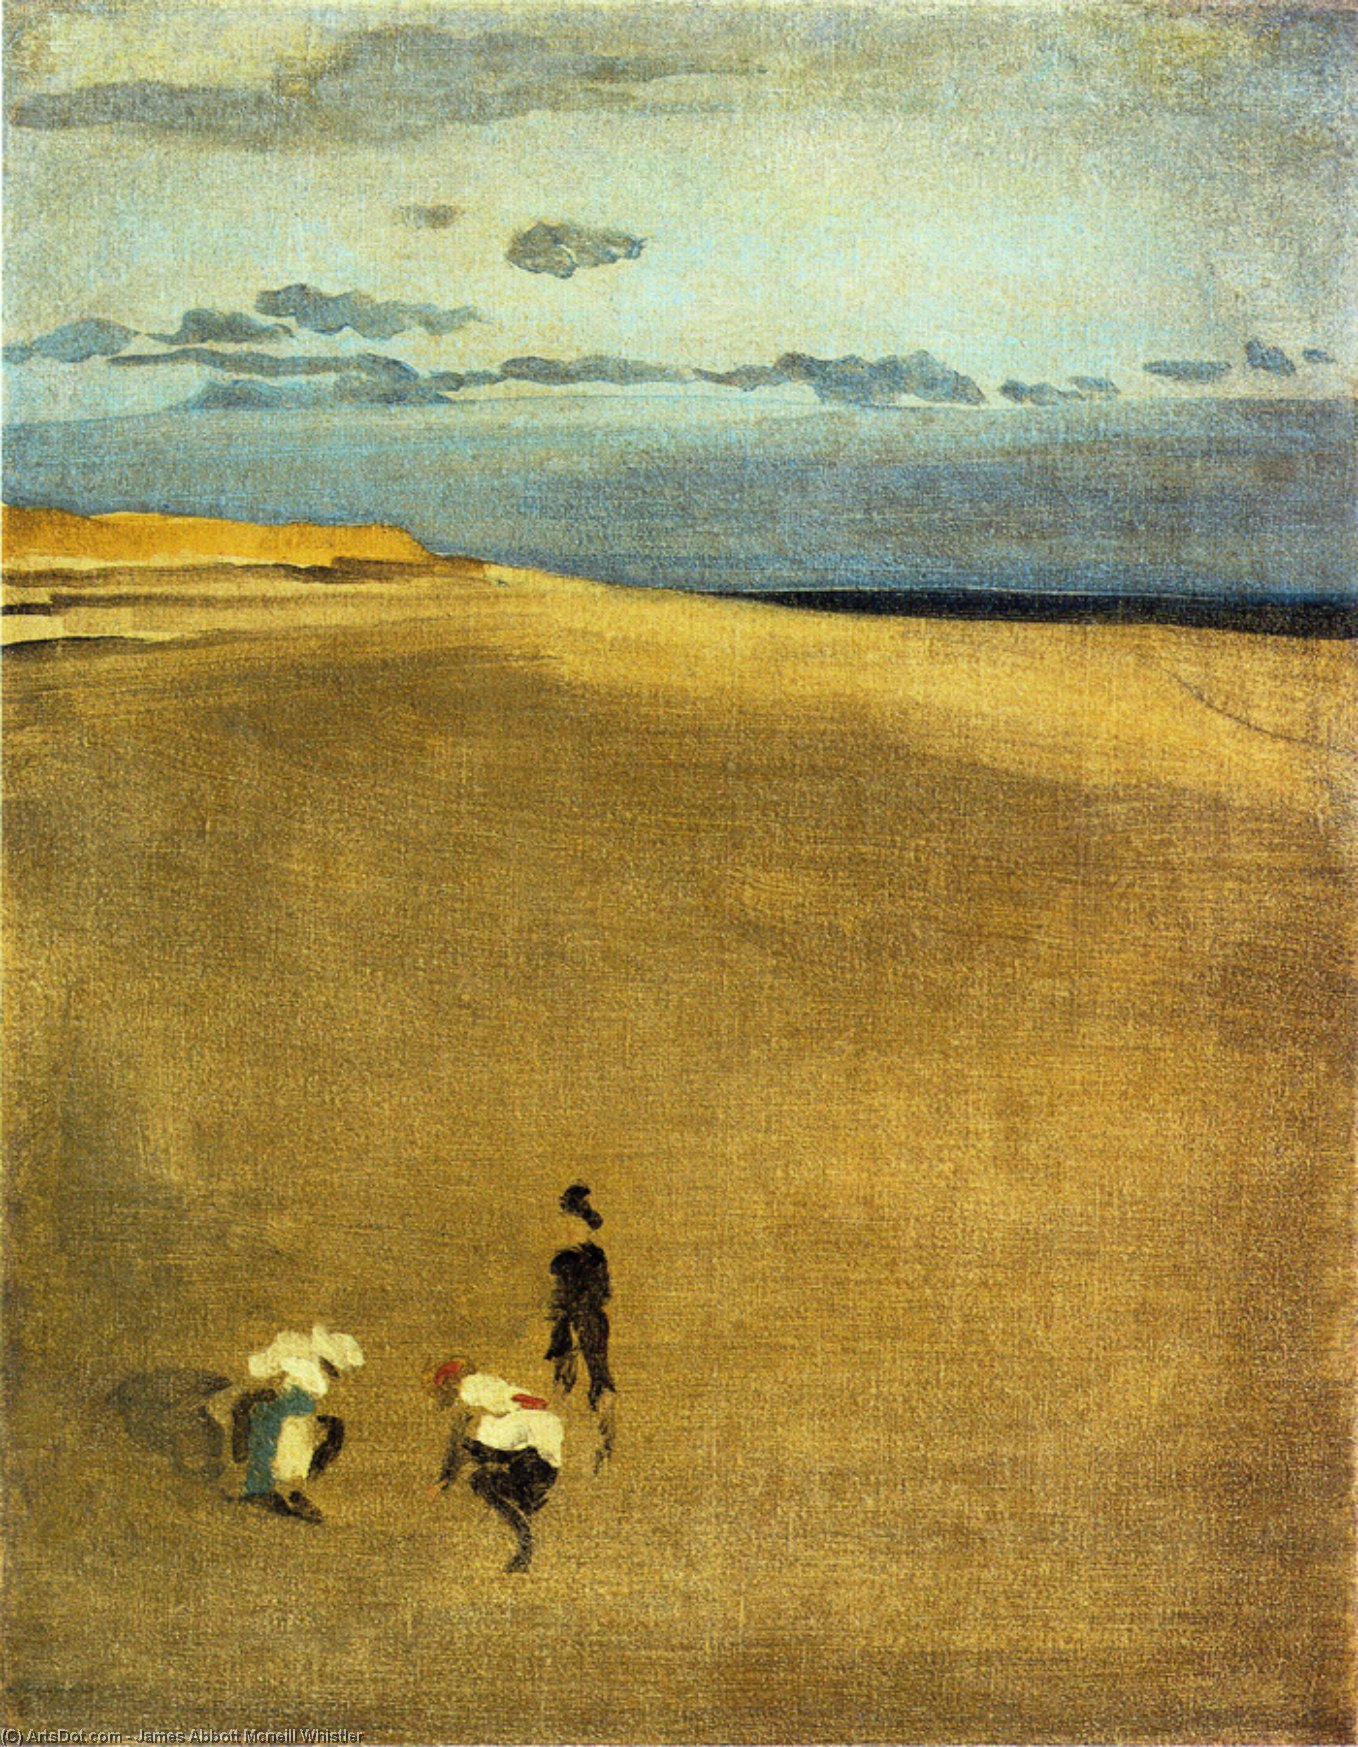 Wikioo.org - The Encyclopedia of Fine Arts - Painting, Artwork by James Abbott Mcneill Whistler - The Beach at Selsey Bill